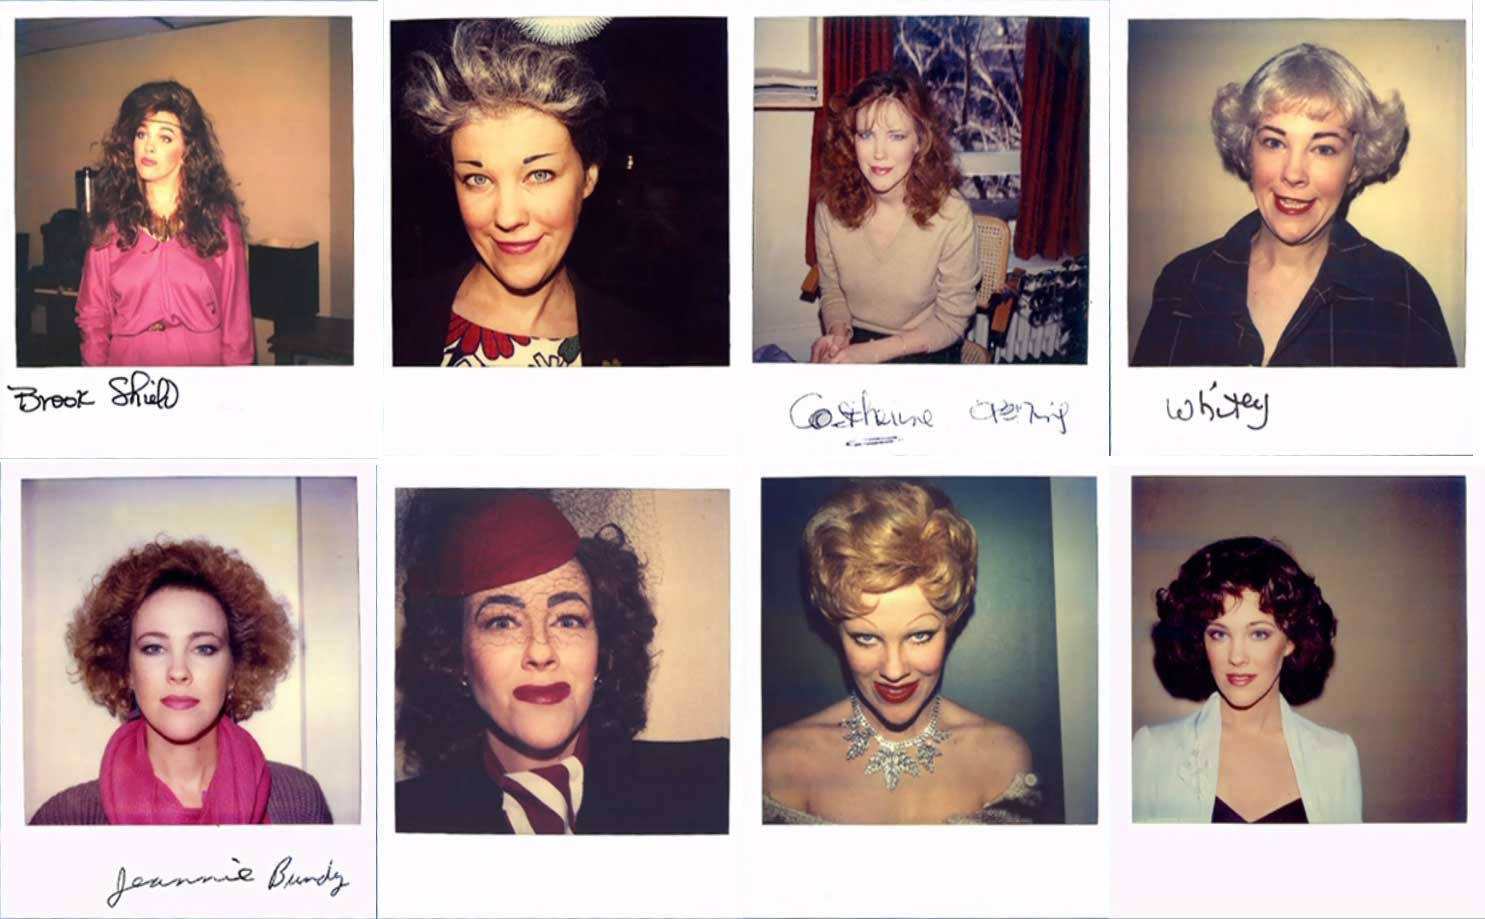 Catherine O'Hara's wardrobe polaroids from the Canadian sketch comedy Second City Television.